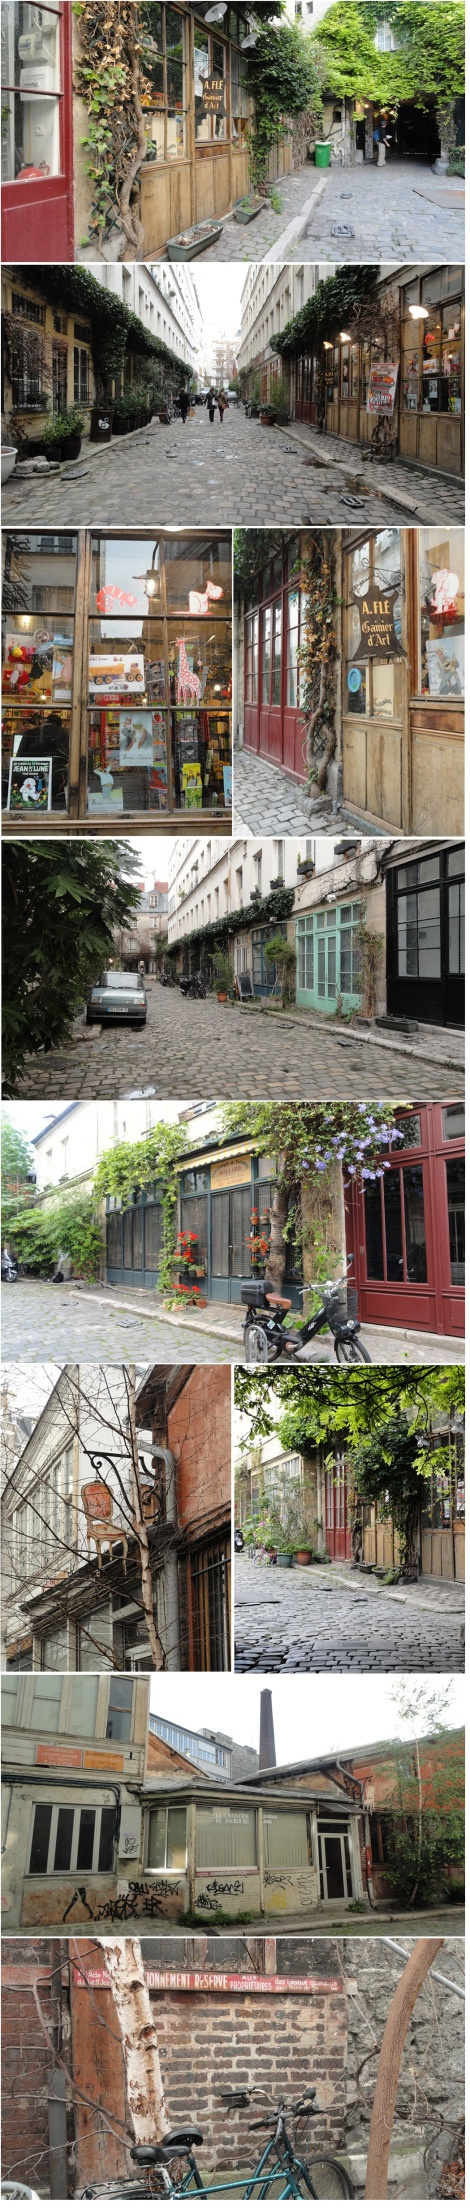 Passage Lhomme (Paris 11e)